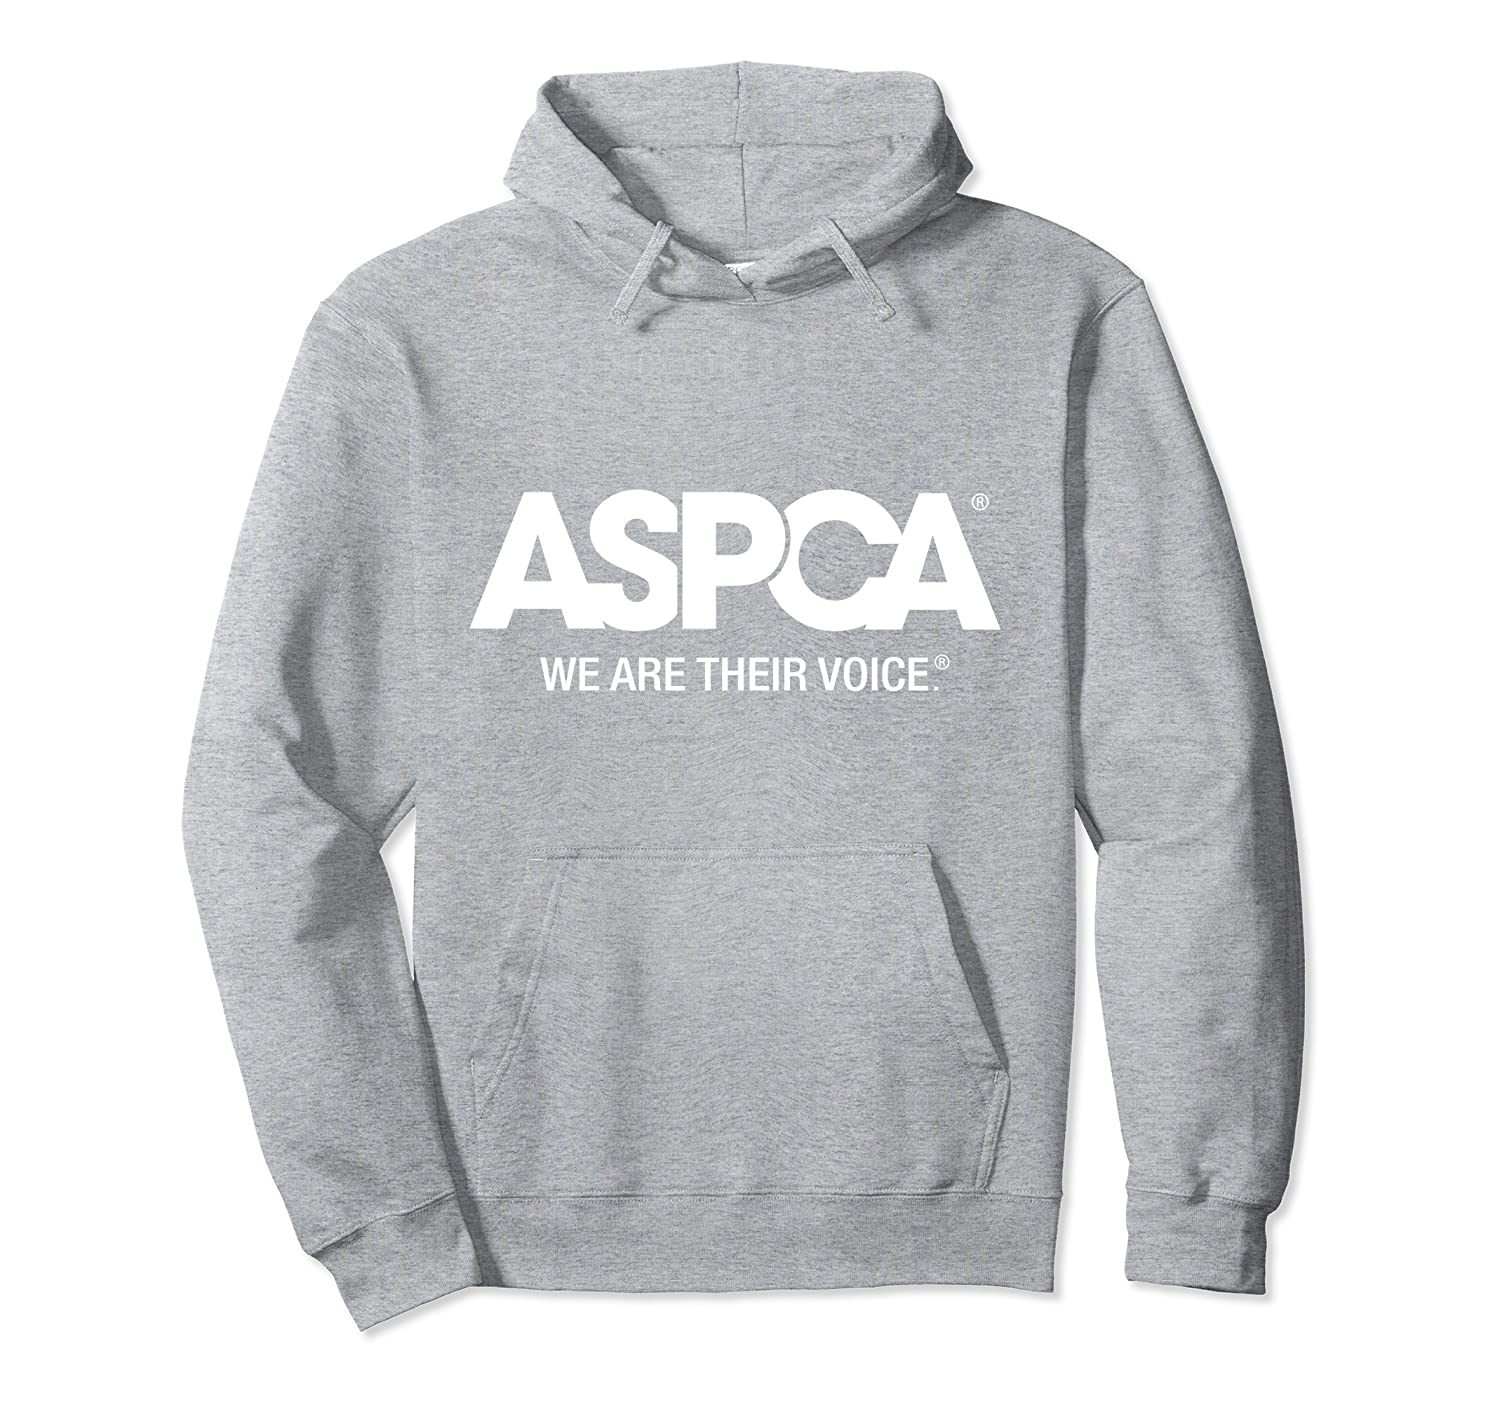 bec326ee18 ASPCA We Are Their Voice Logo Hoodie-prm – Paramatee